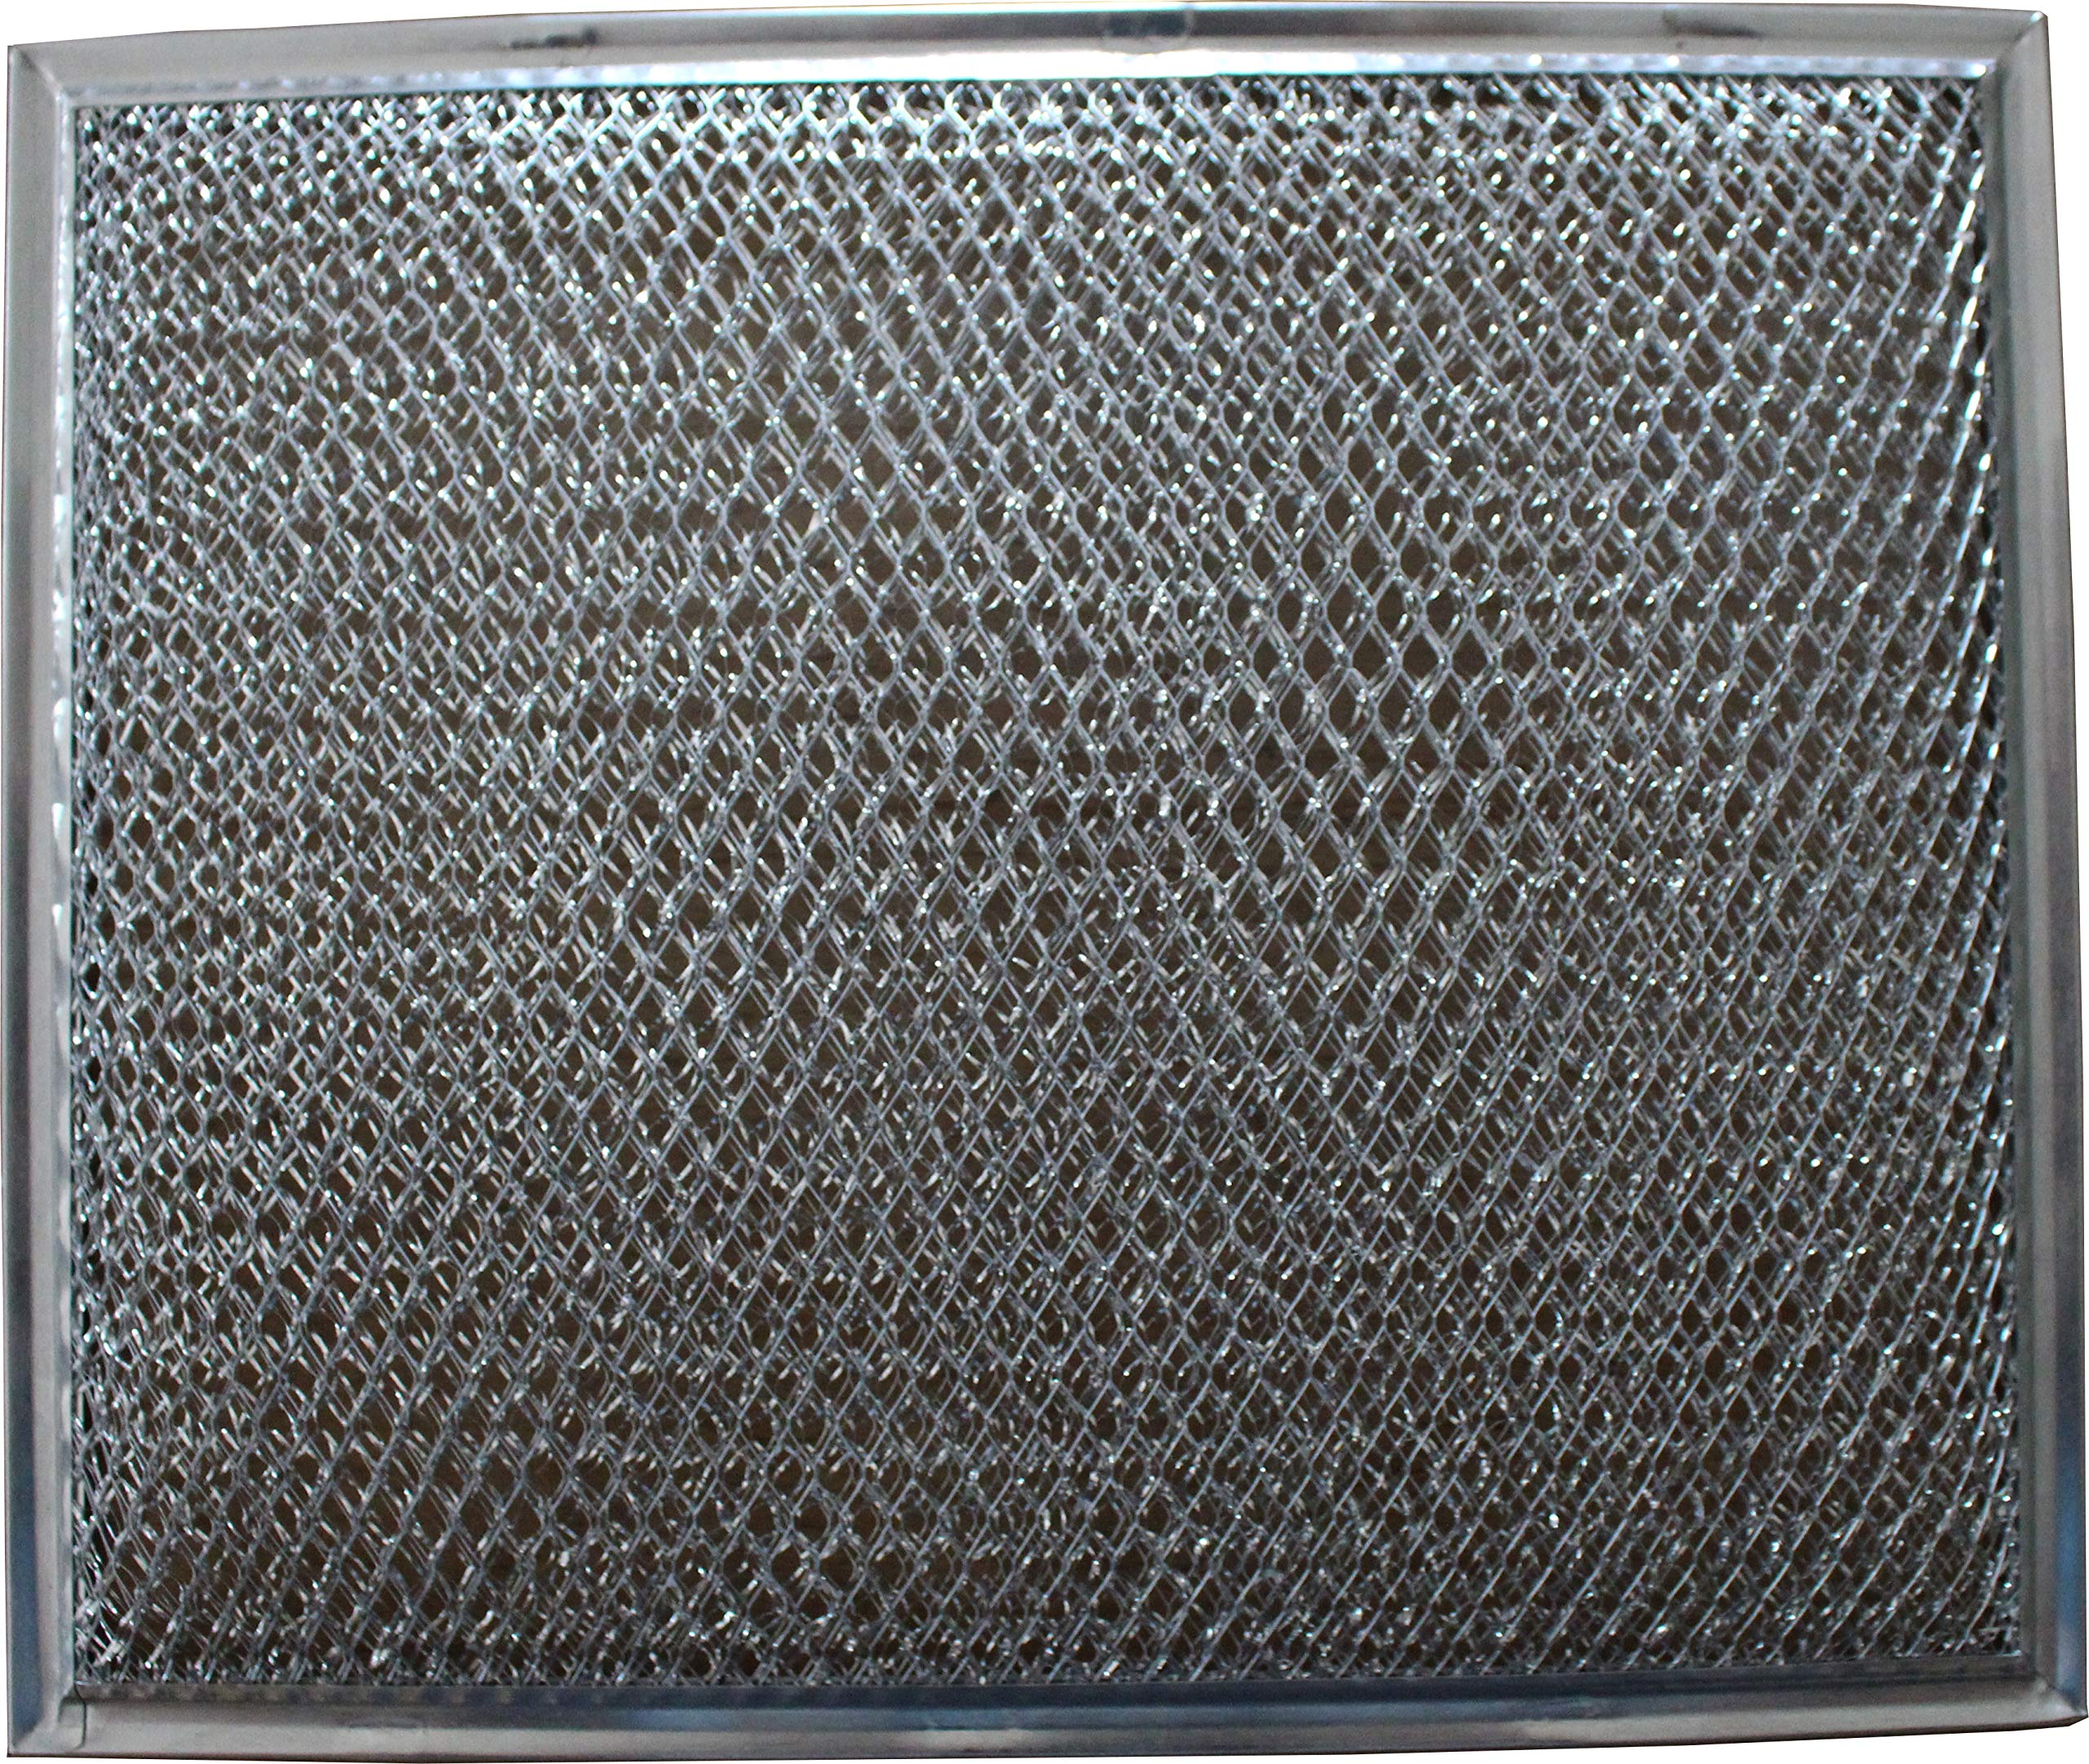 Replacement Aluminum Filter Compatible With Many Broan / Nutone Models   10 1/2 x 8 3/4 x 1/8 inches